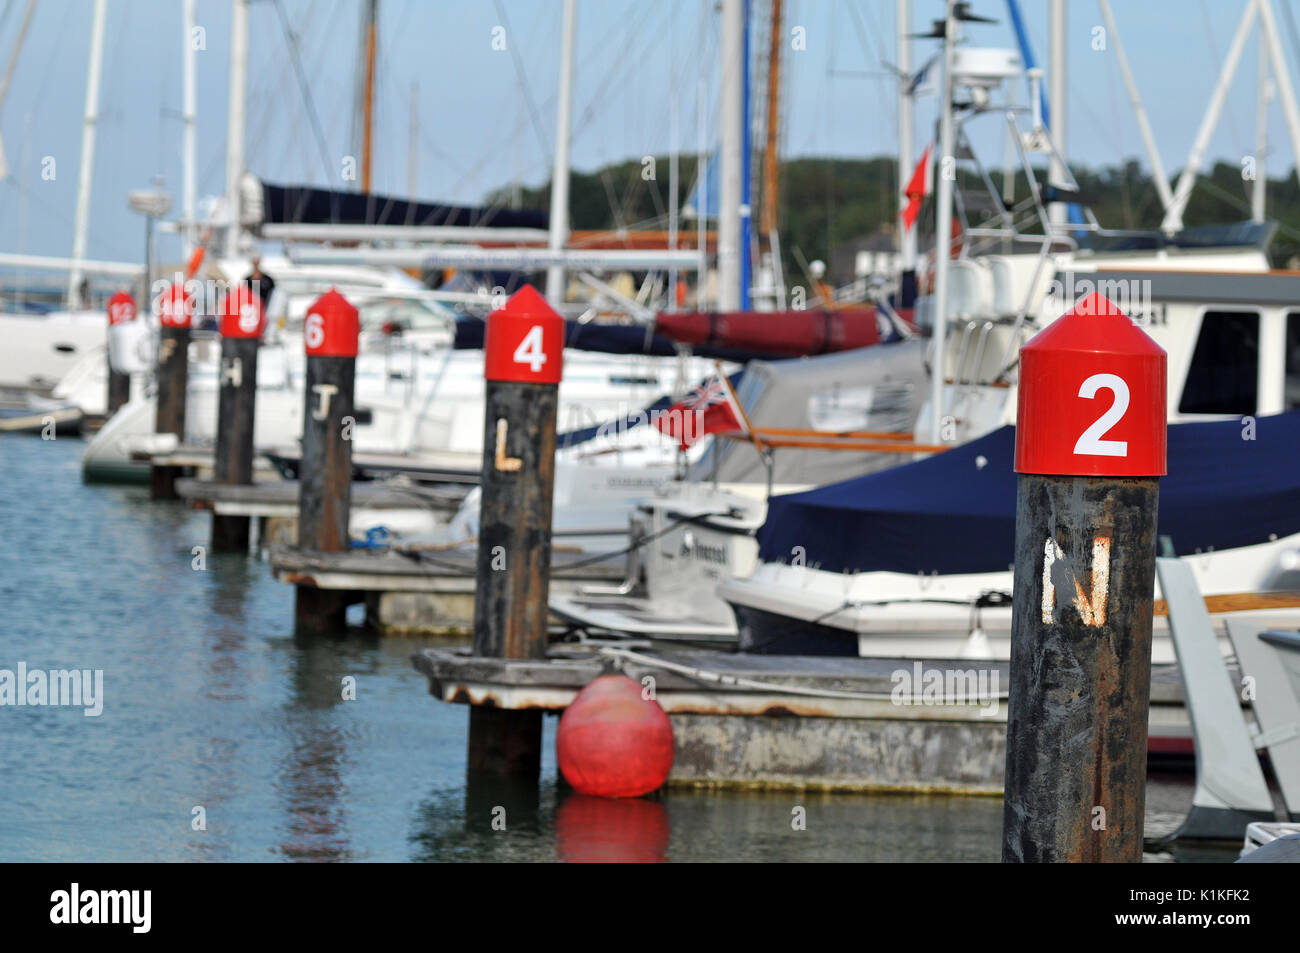 The yacht haven marinas at Cowes on the Isle of Wight solent berthing and moorings yachting and boating harbours Isle of Wight ferry cowes week - Stock Image